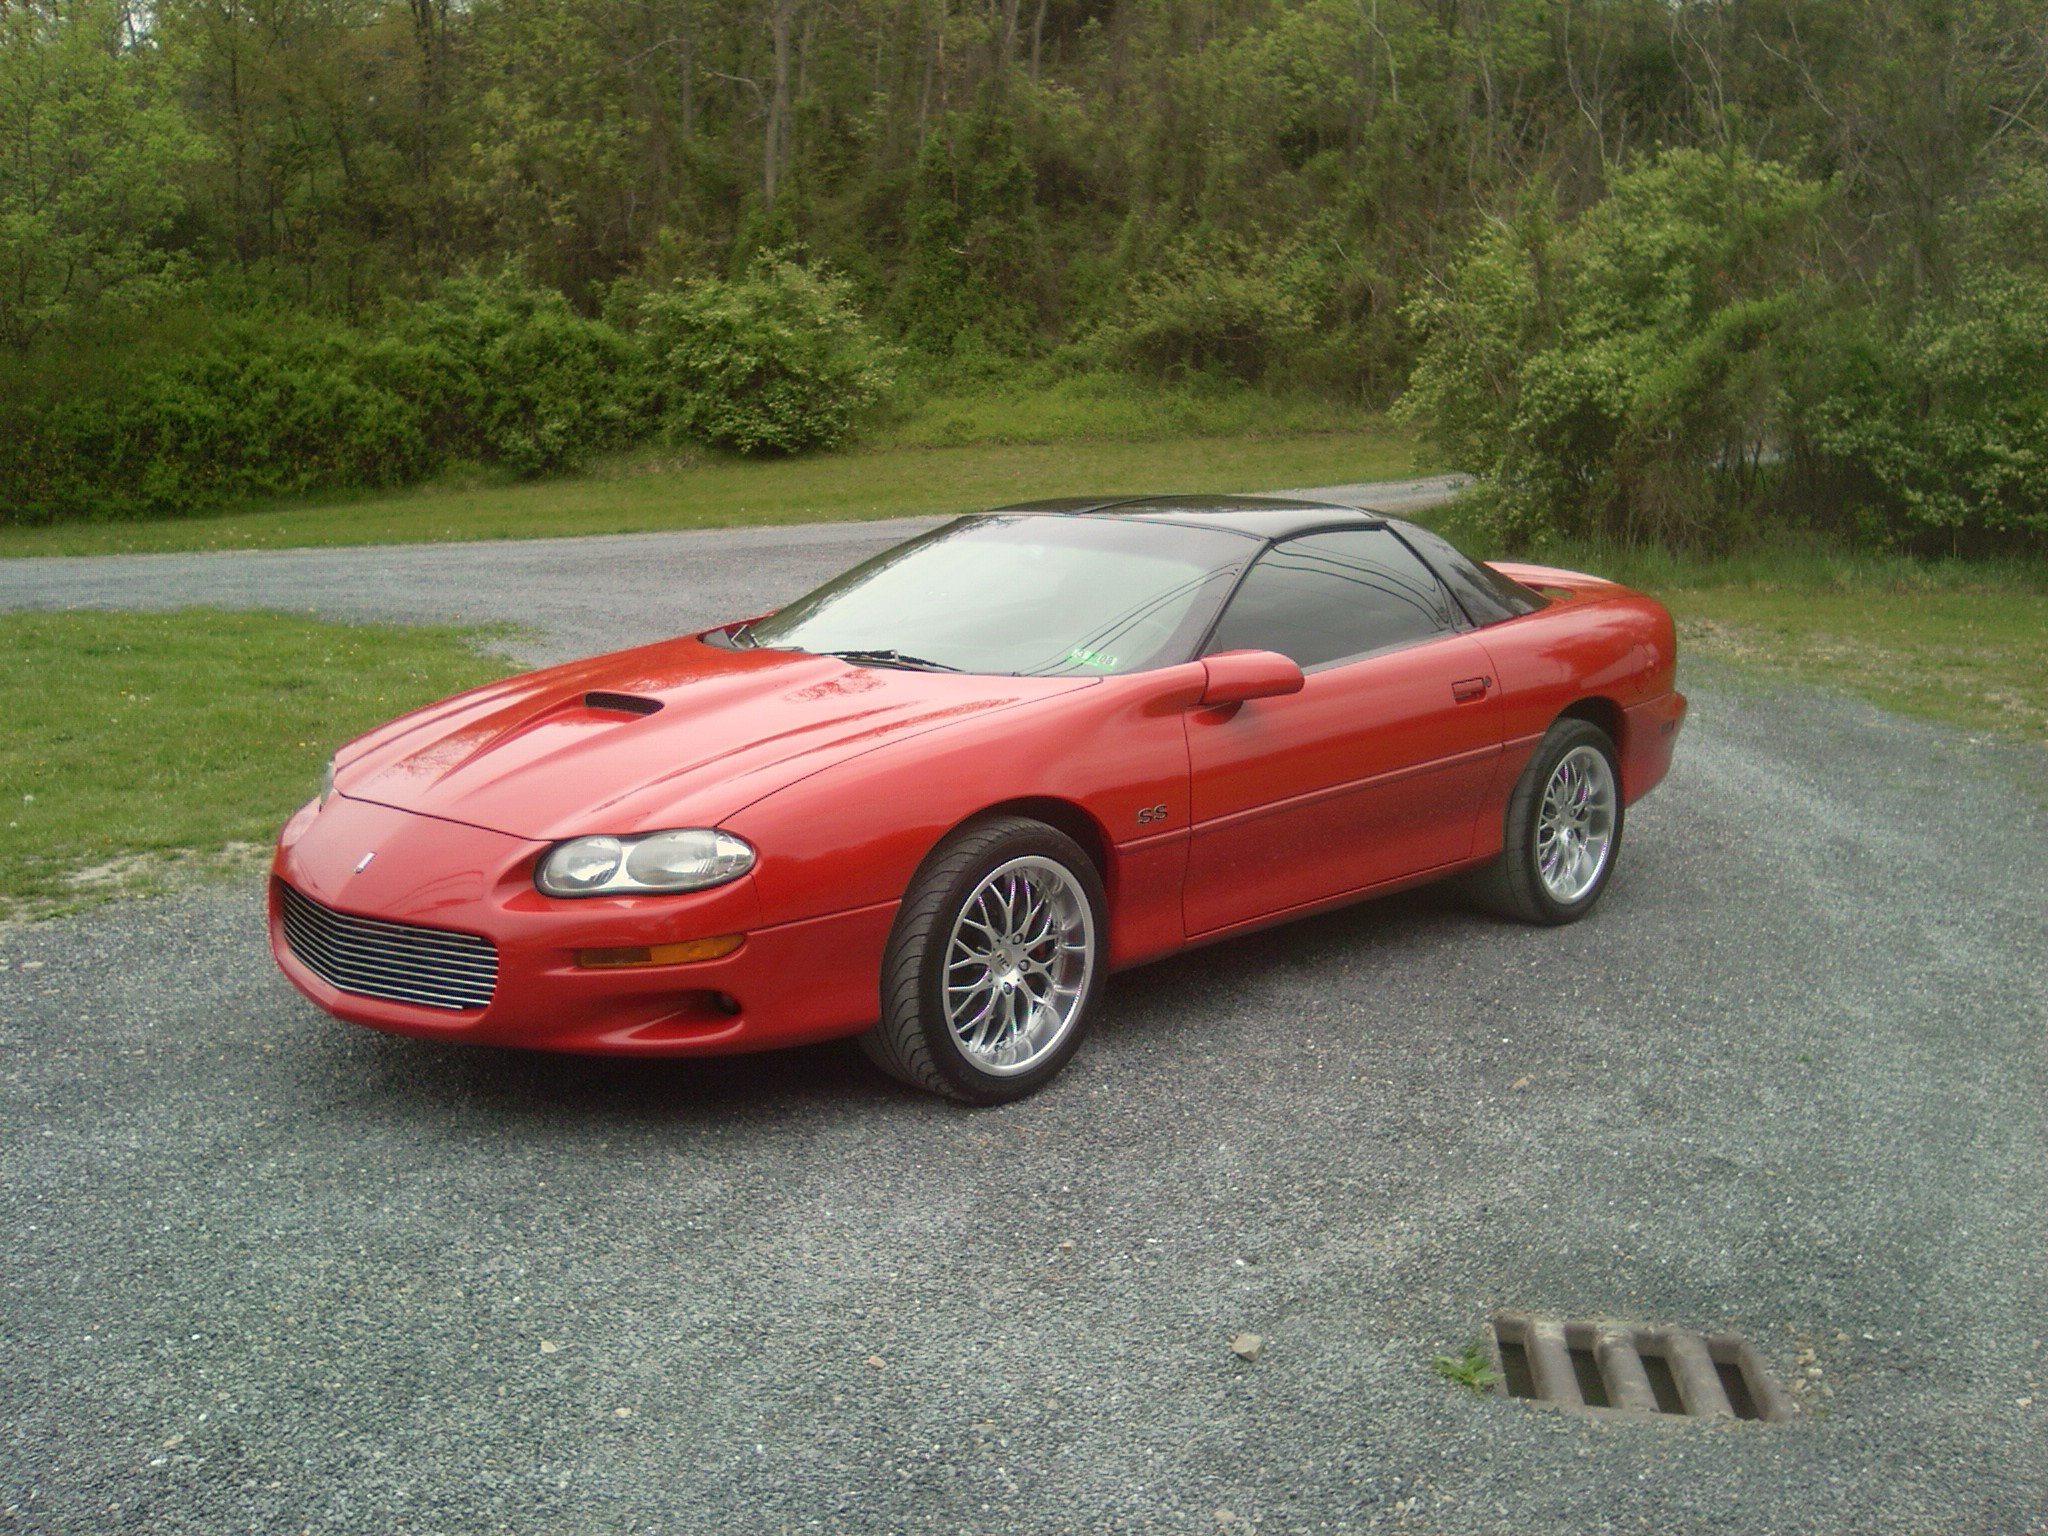 2000 chevrolet camaro ss 1 4 mile trap speeds 0 60. Black Bedroom Furniture Sets. Home Design Ideas